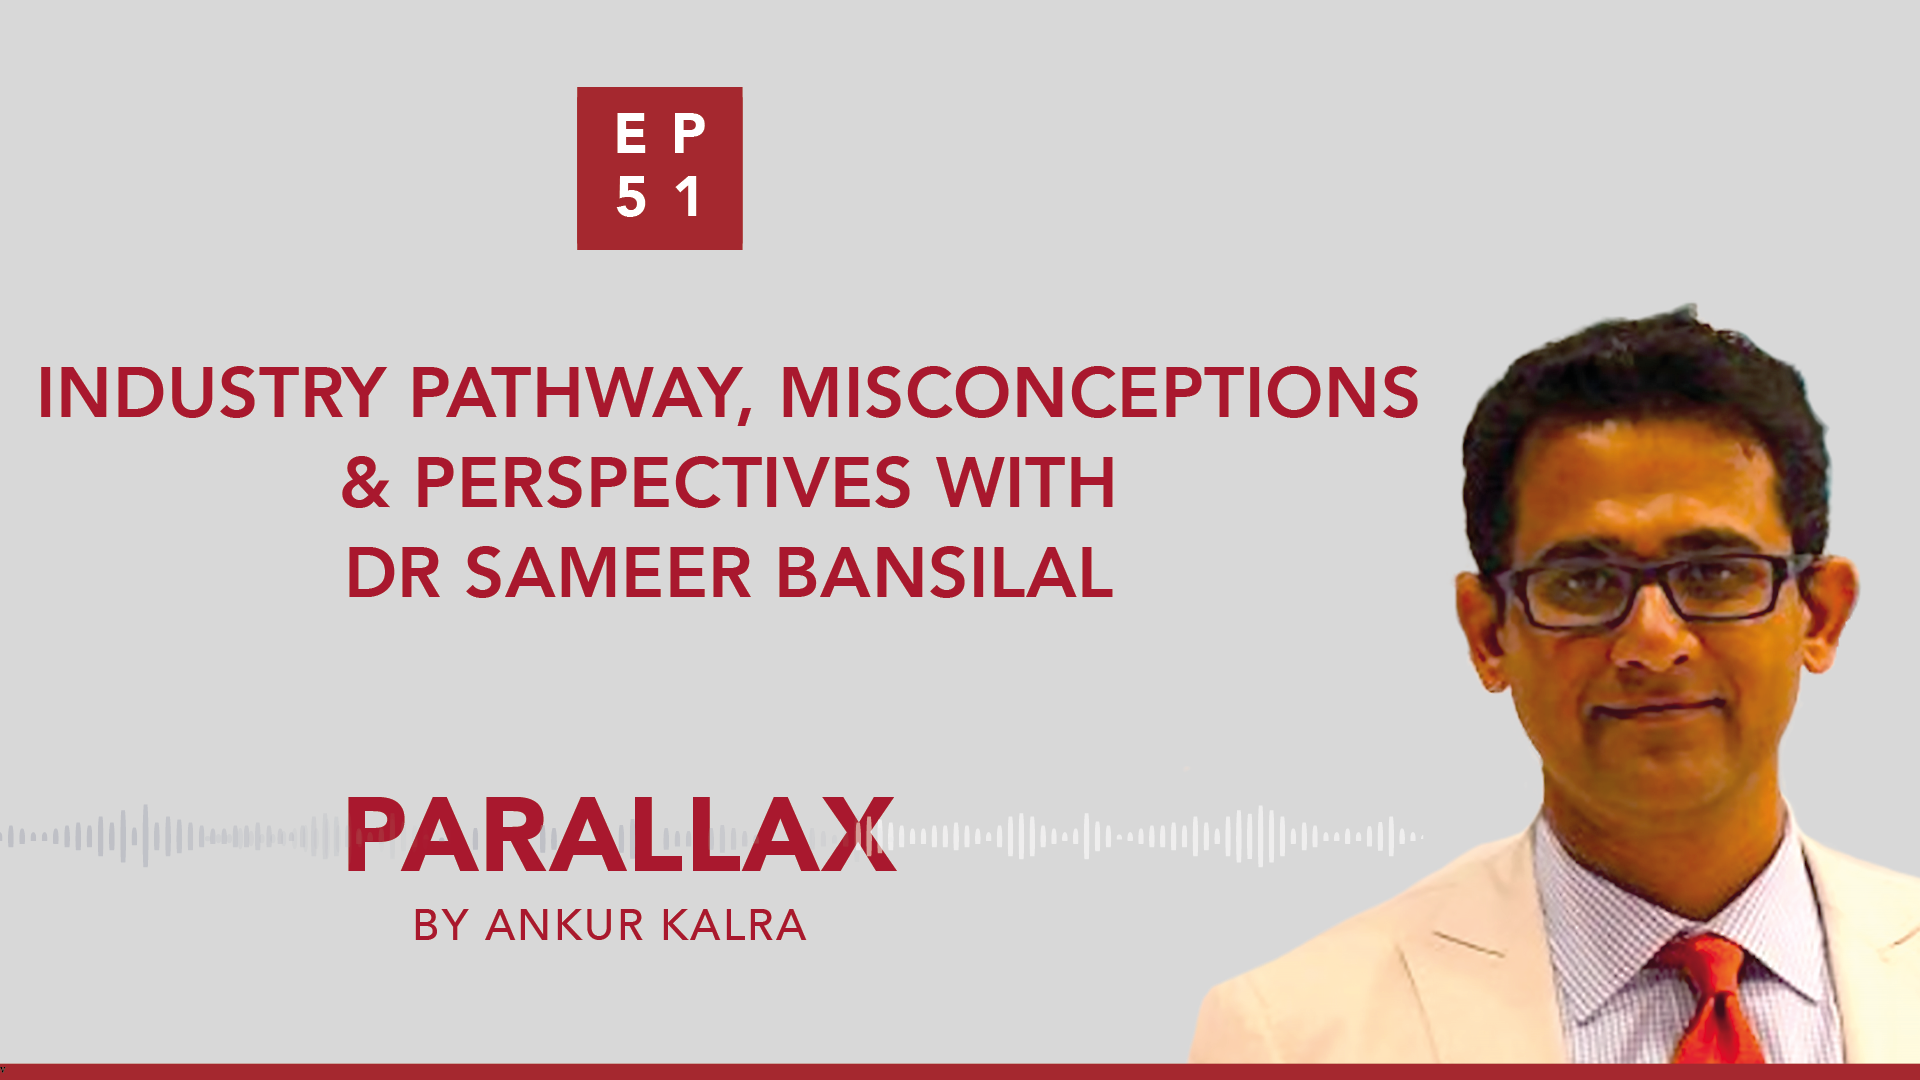 Industry Pathway, Misconceptions & Perspectives with Dr Sameer Bansilal